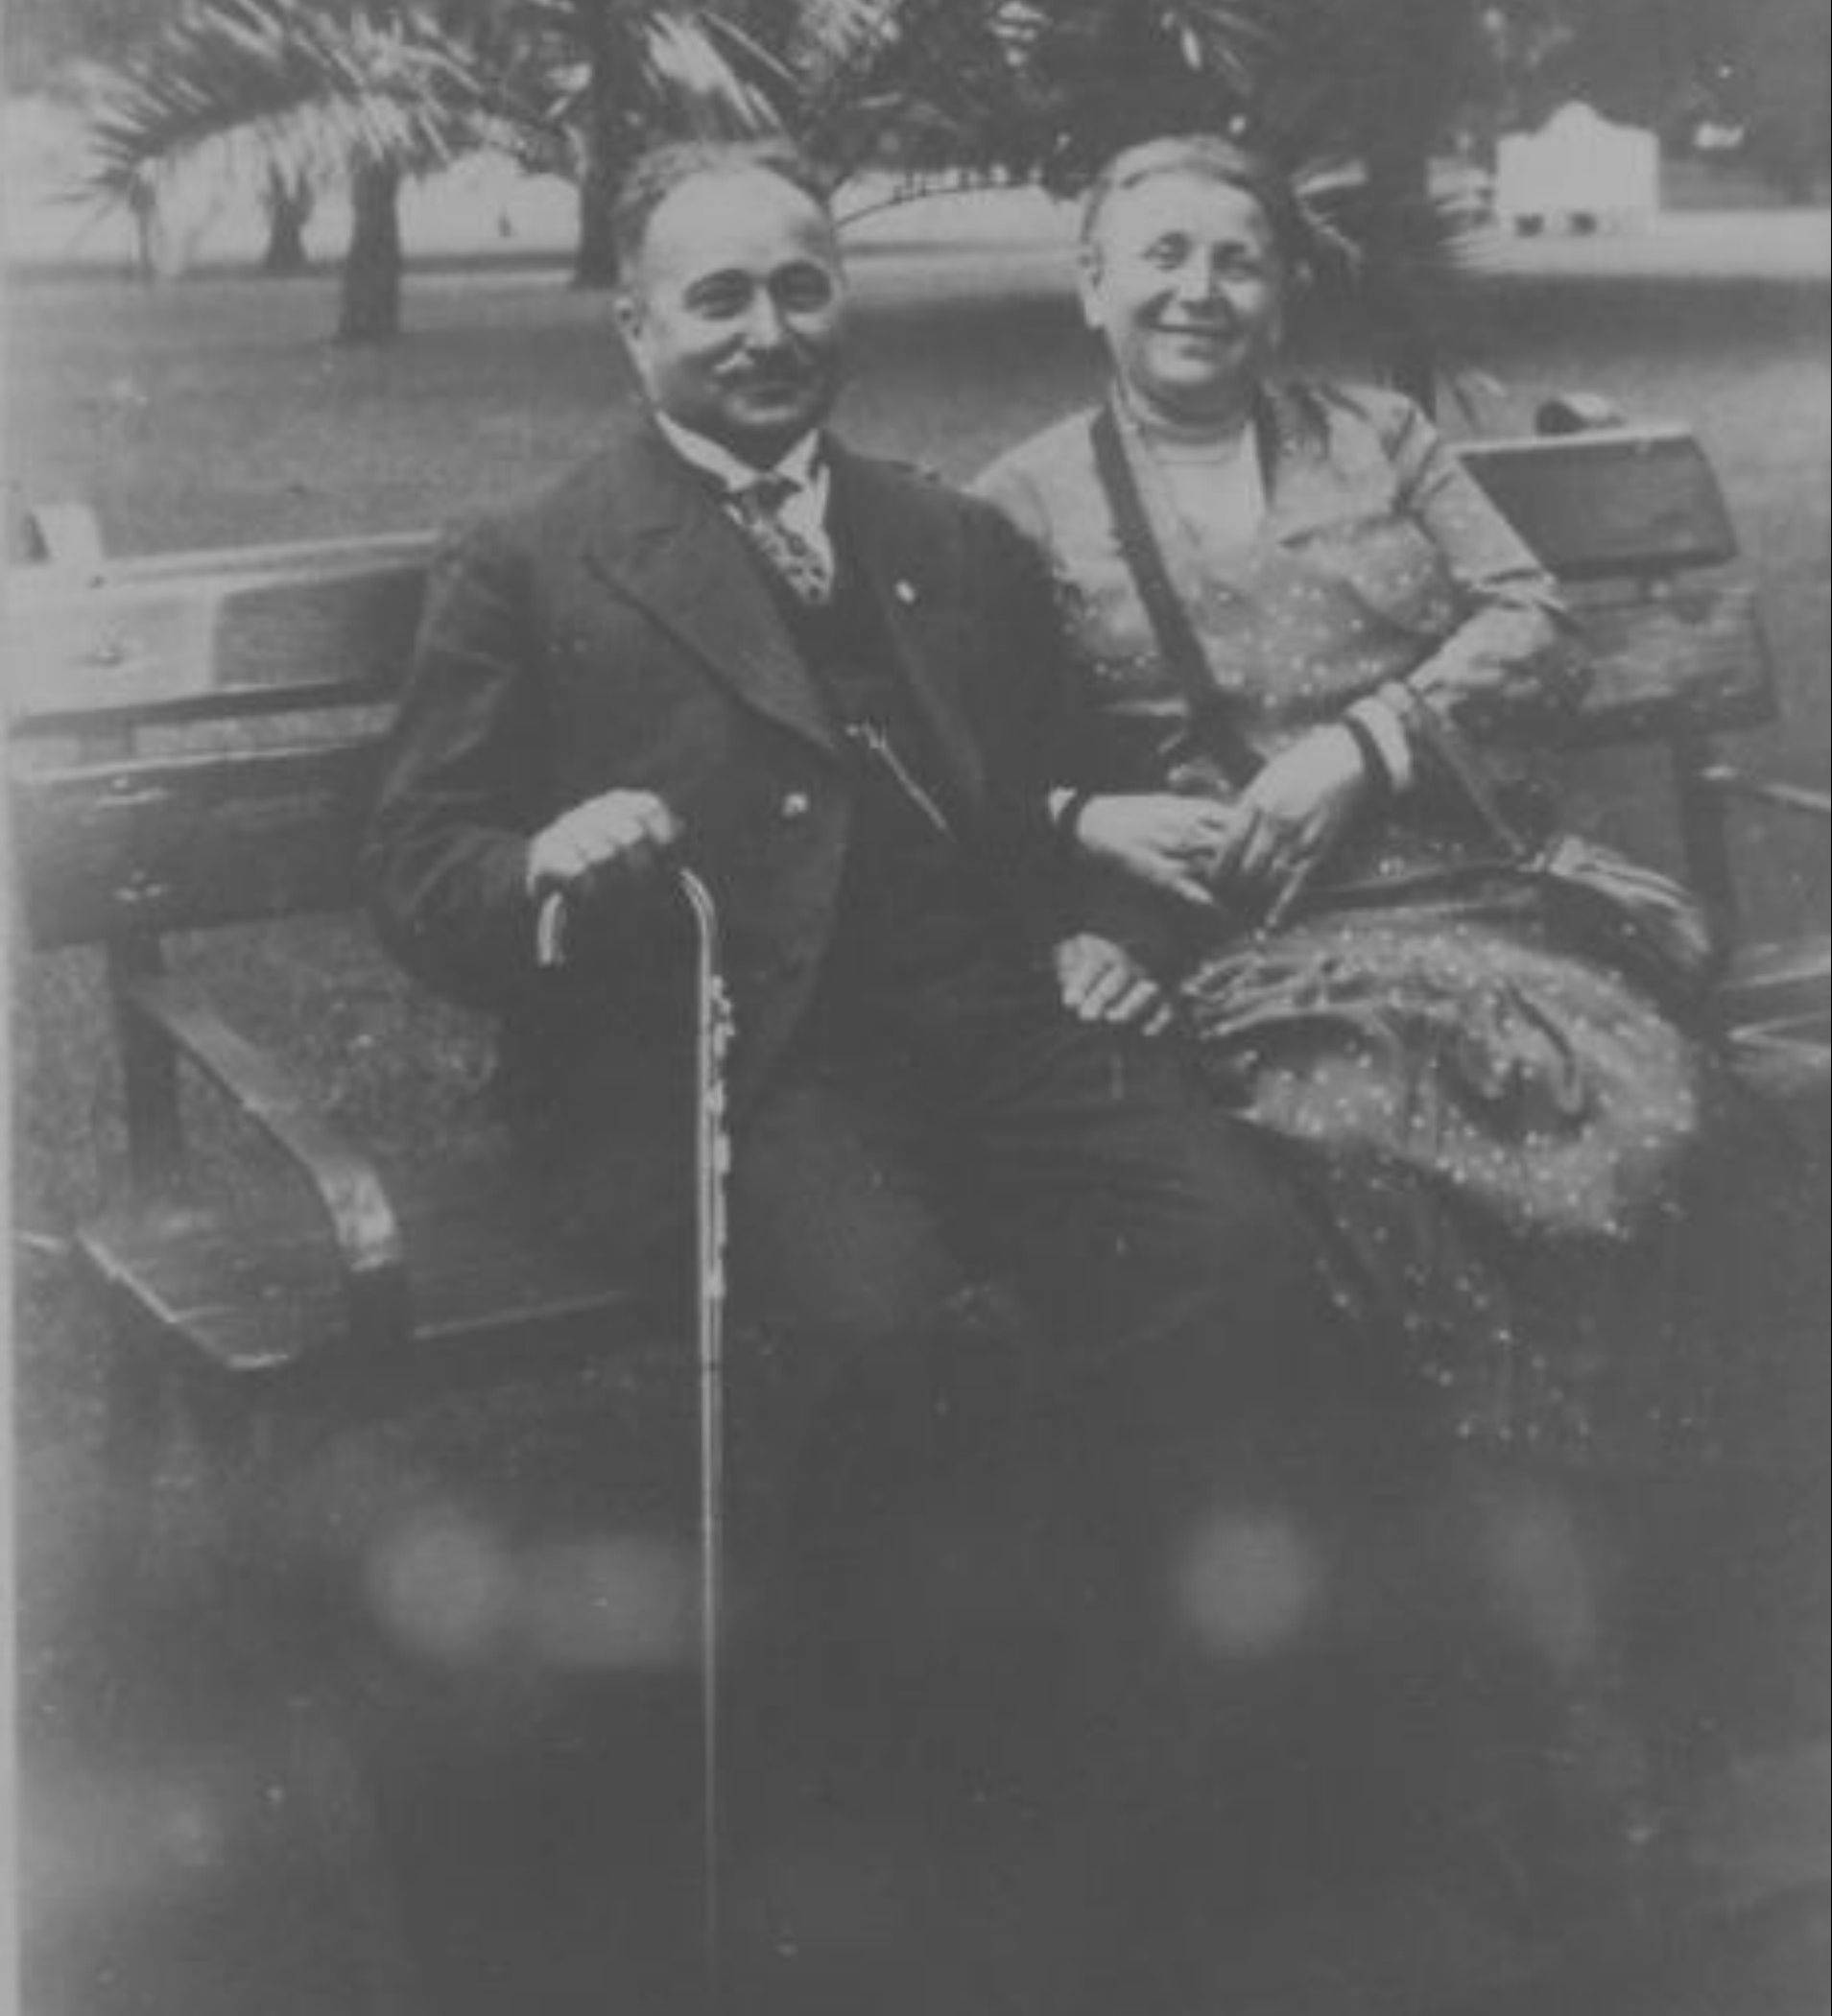 Max and Regina Klaber both died in 1942 in separate concentration camps.